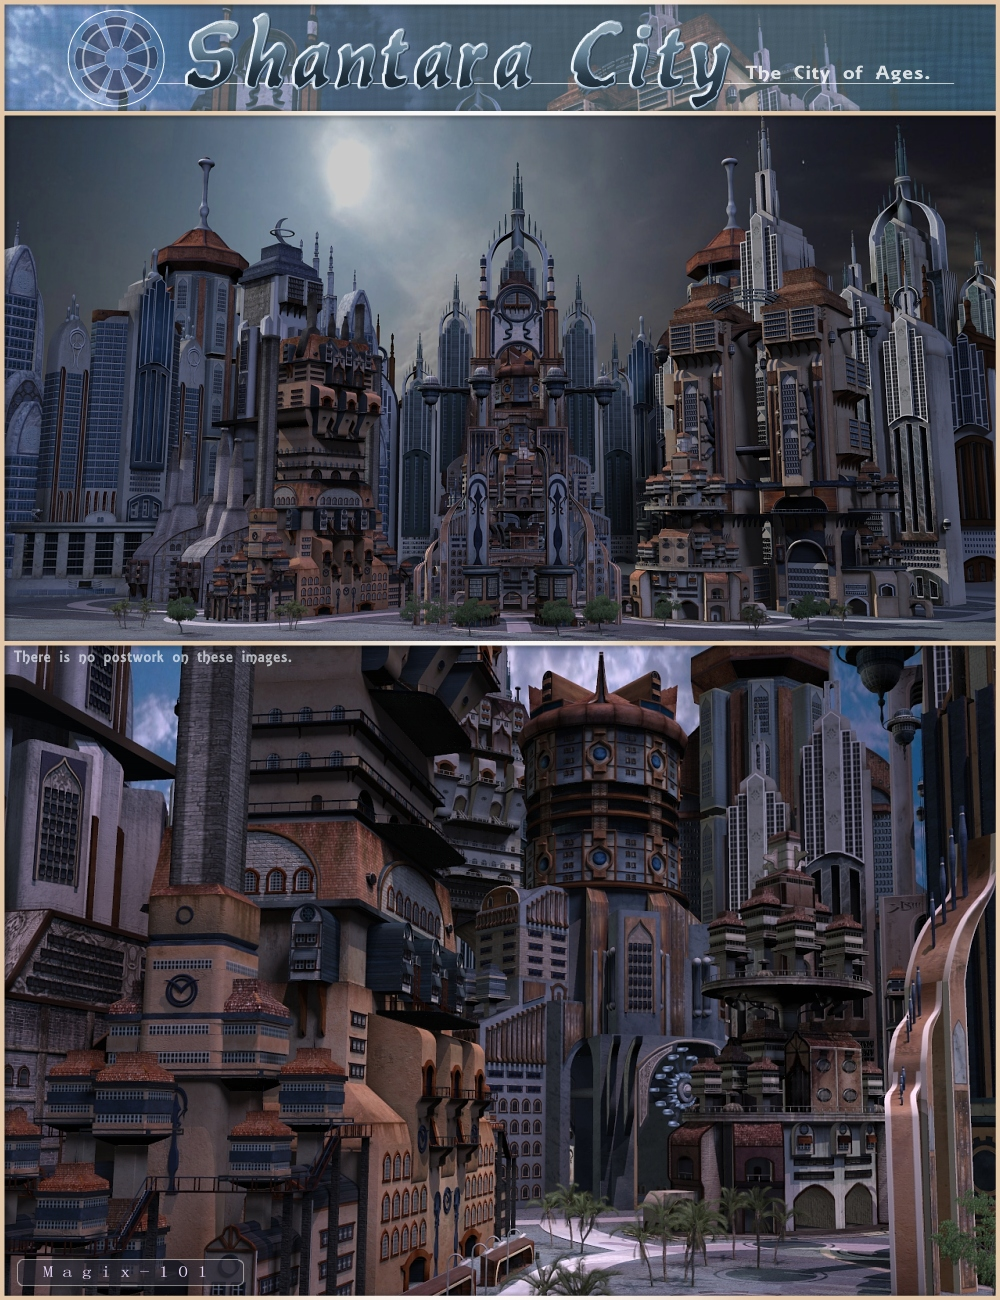 Shantara City by: Magix 101, 3D Models by Daz 3D